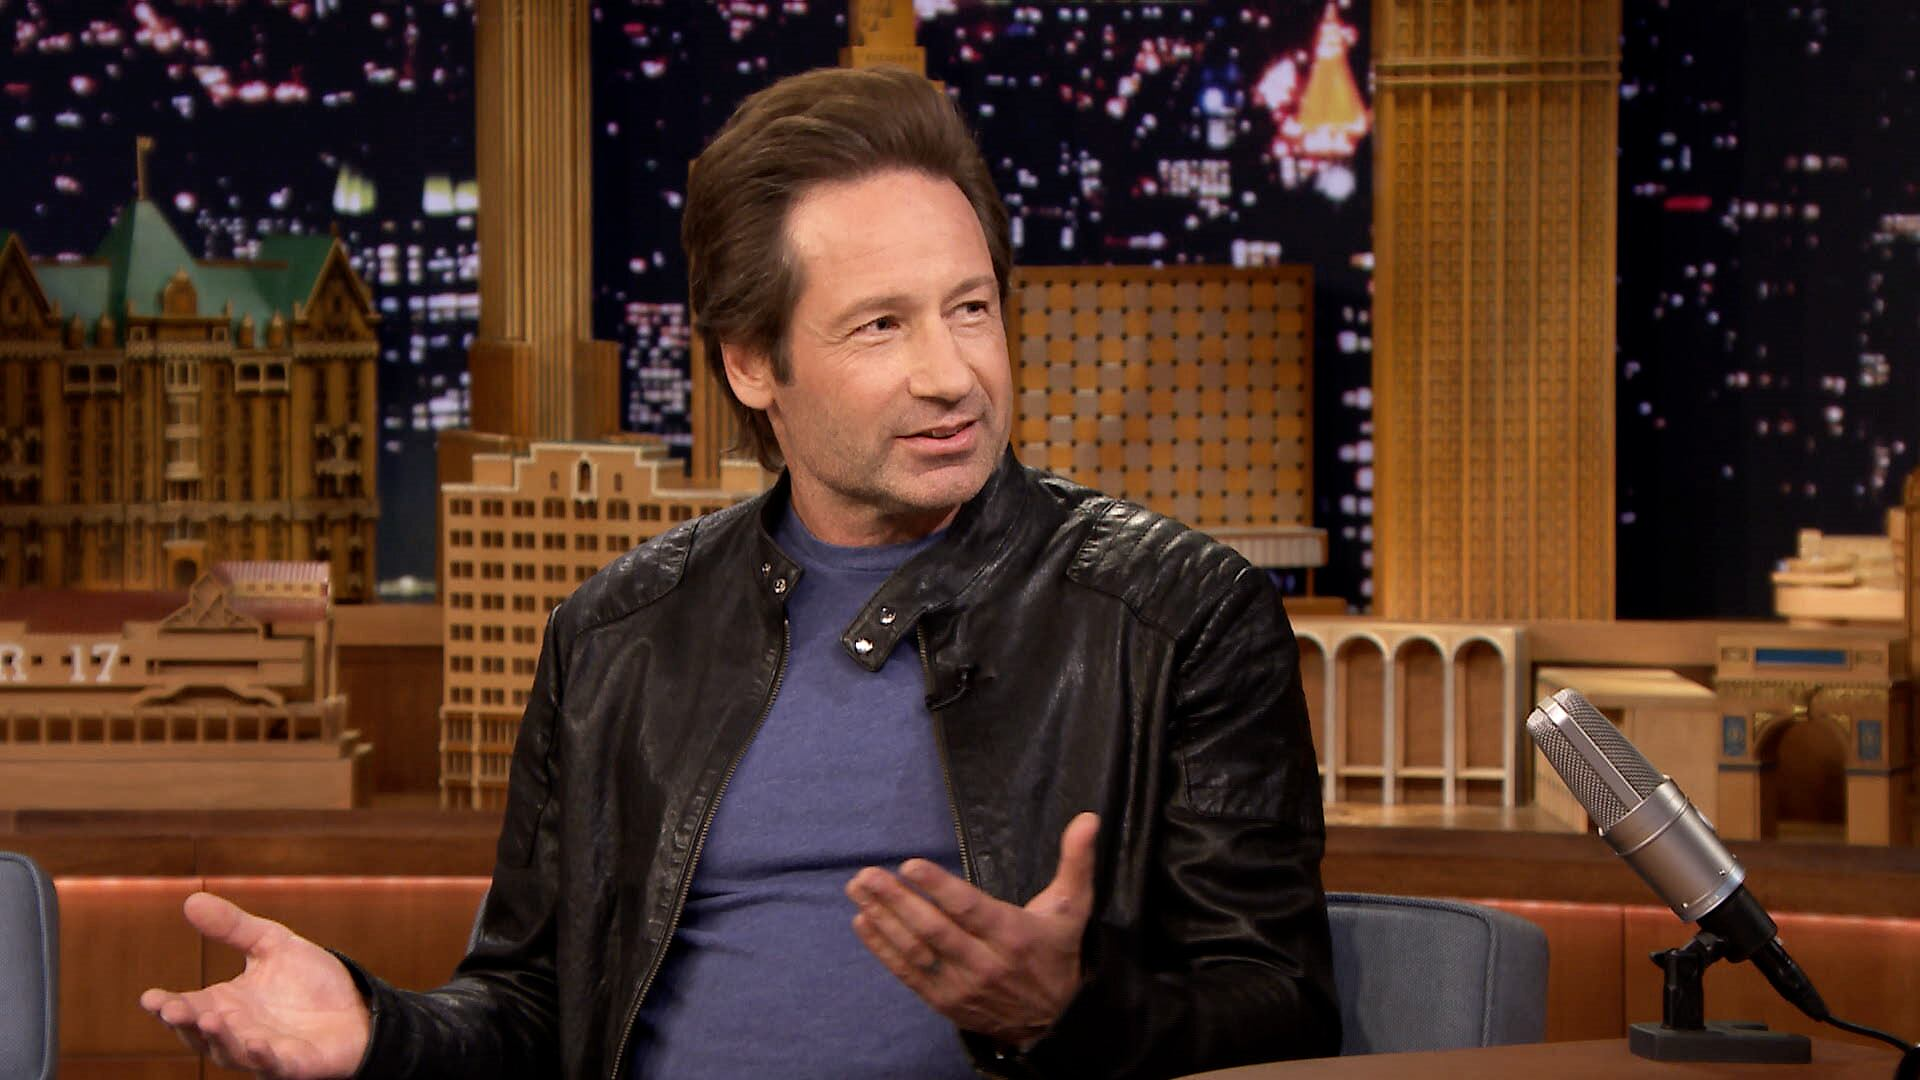 David Duchovny Was the Head Boy in High School